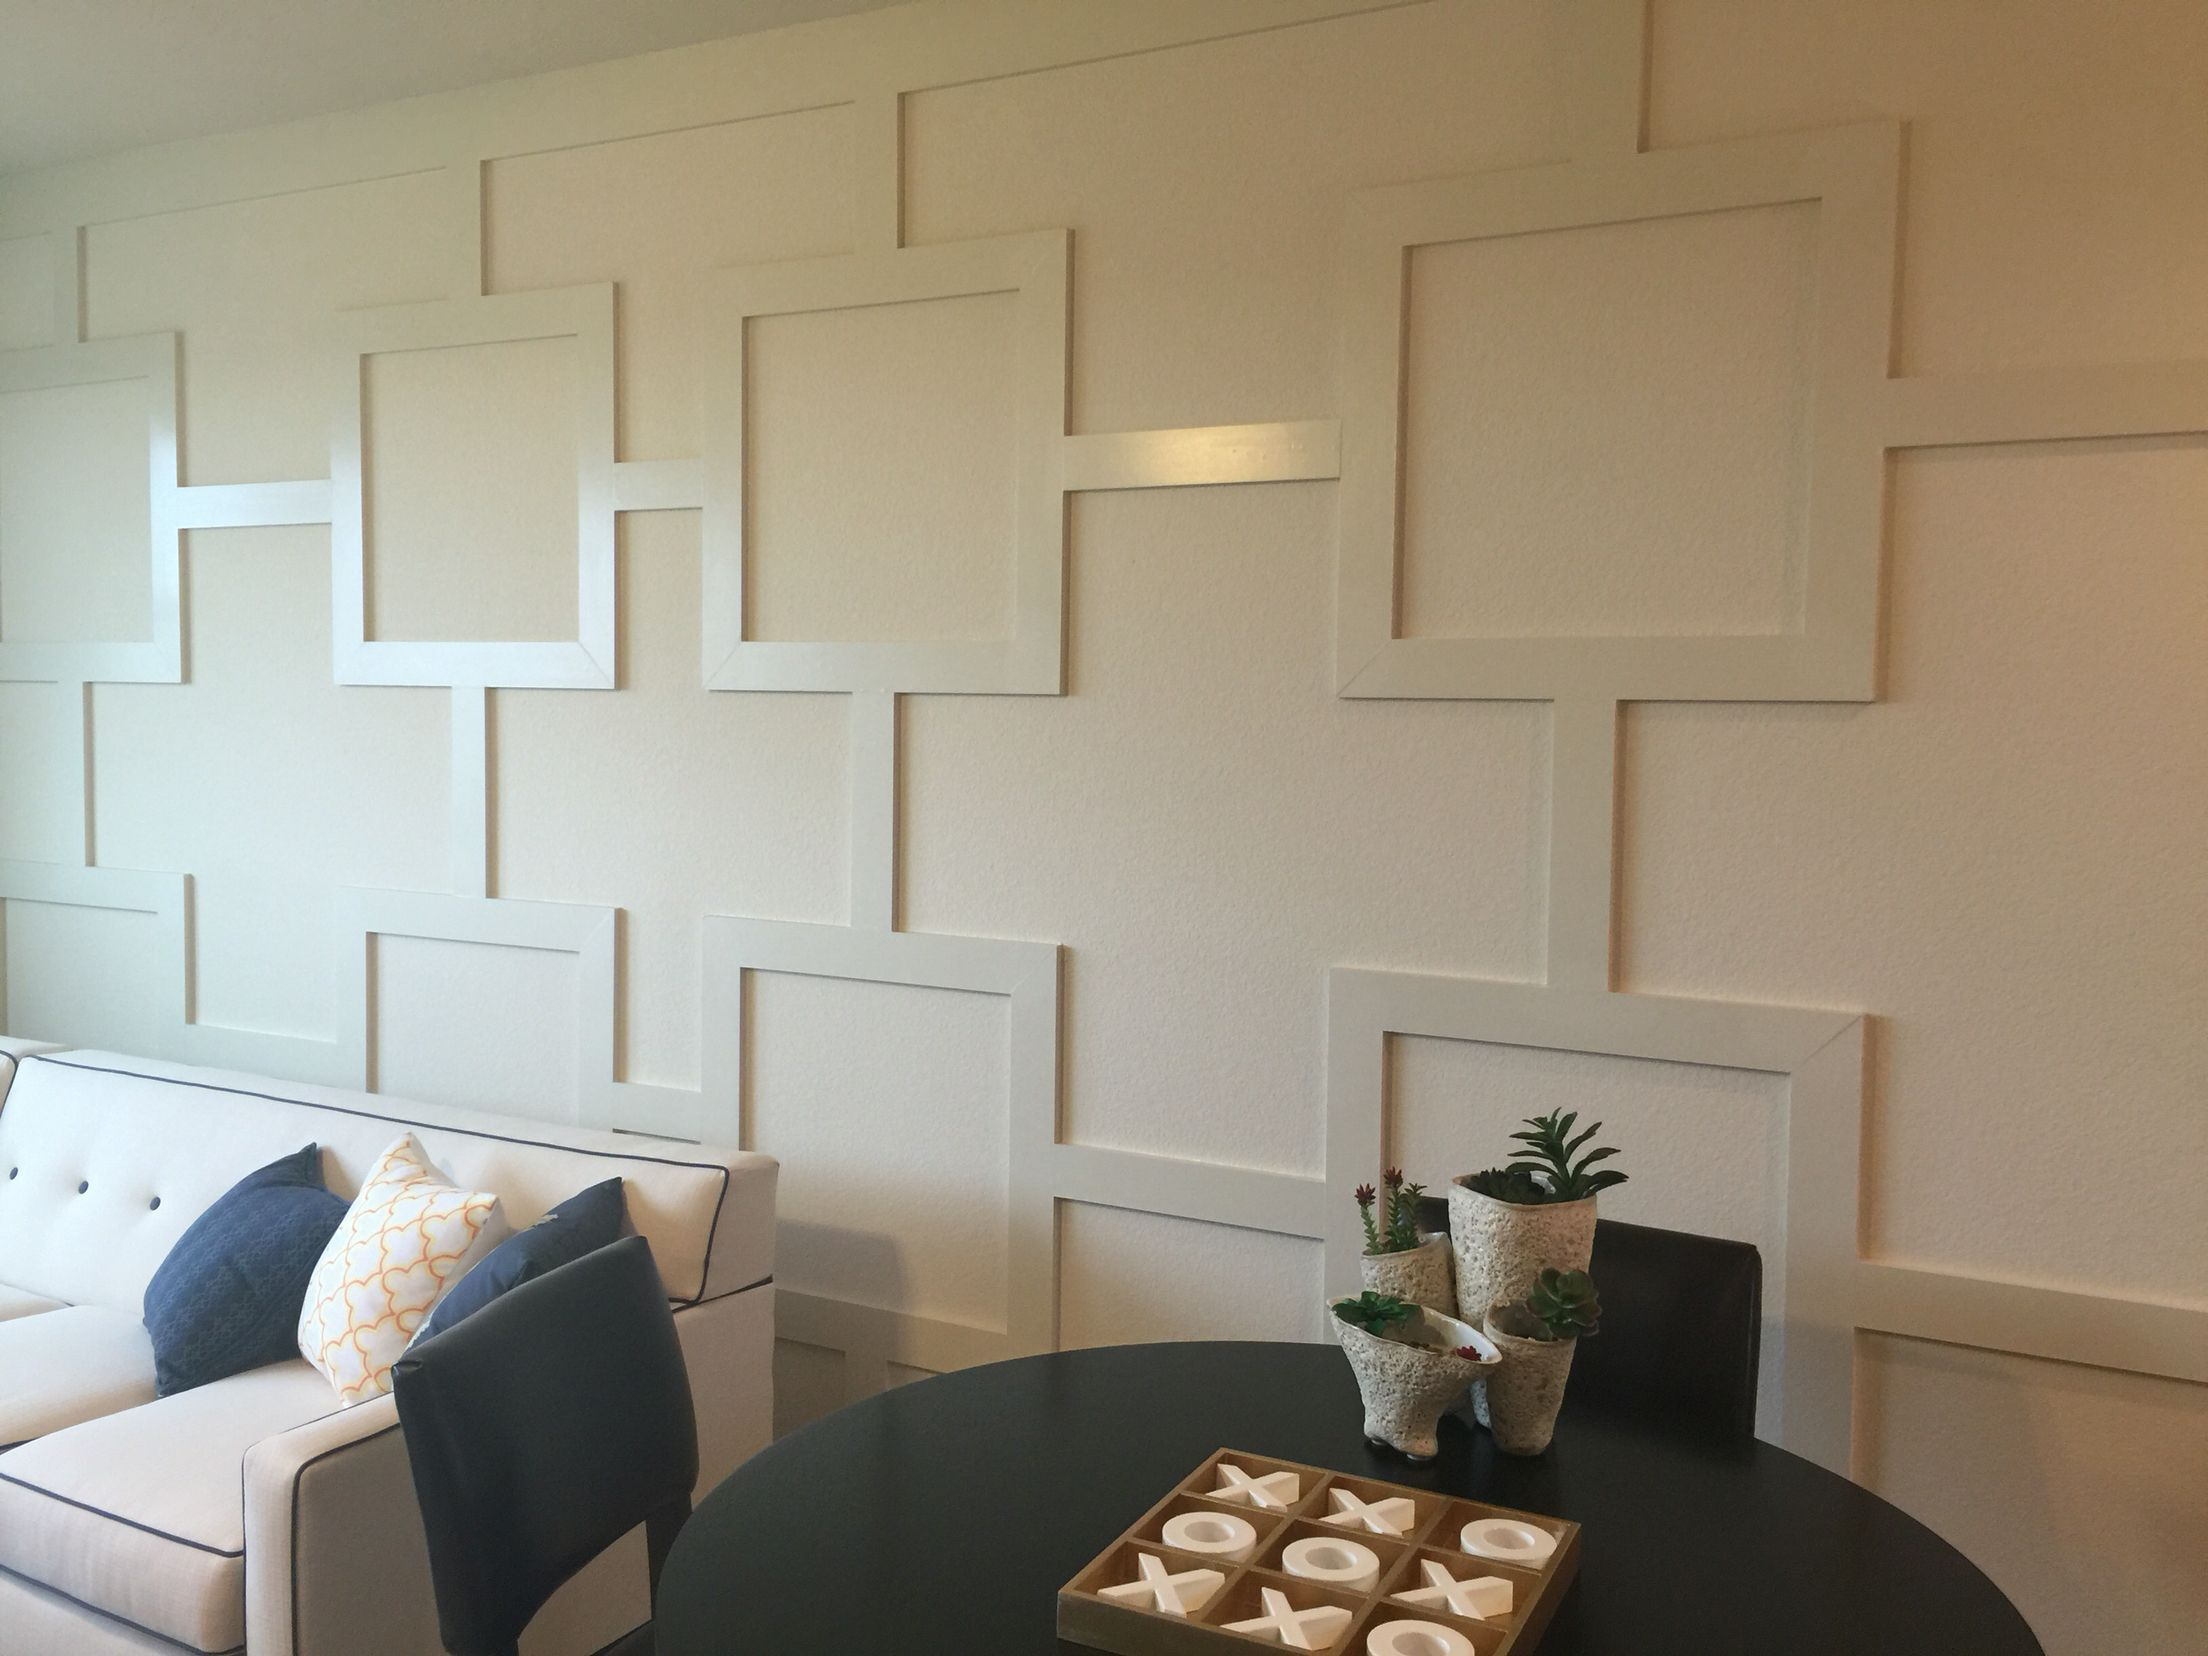 Wood Trim Design Accent Wall Simply Use 1x4 S To Add This Look Any Room